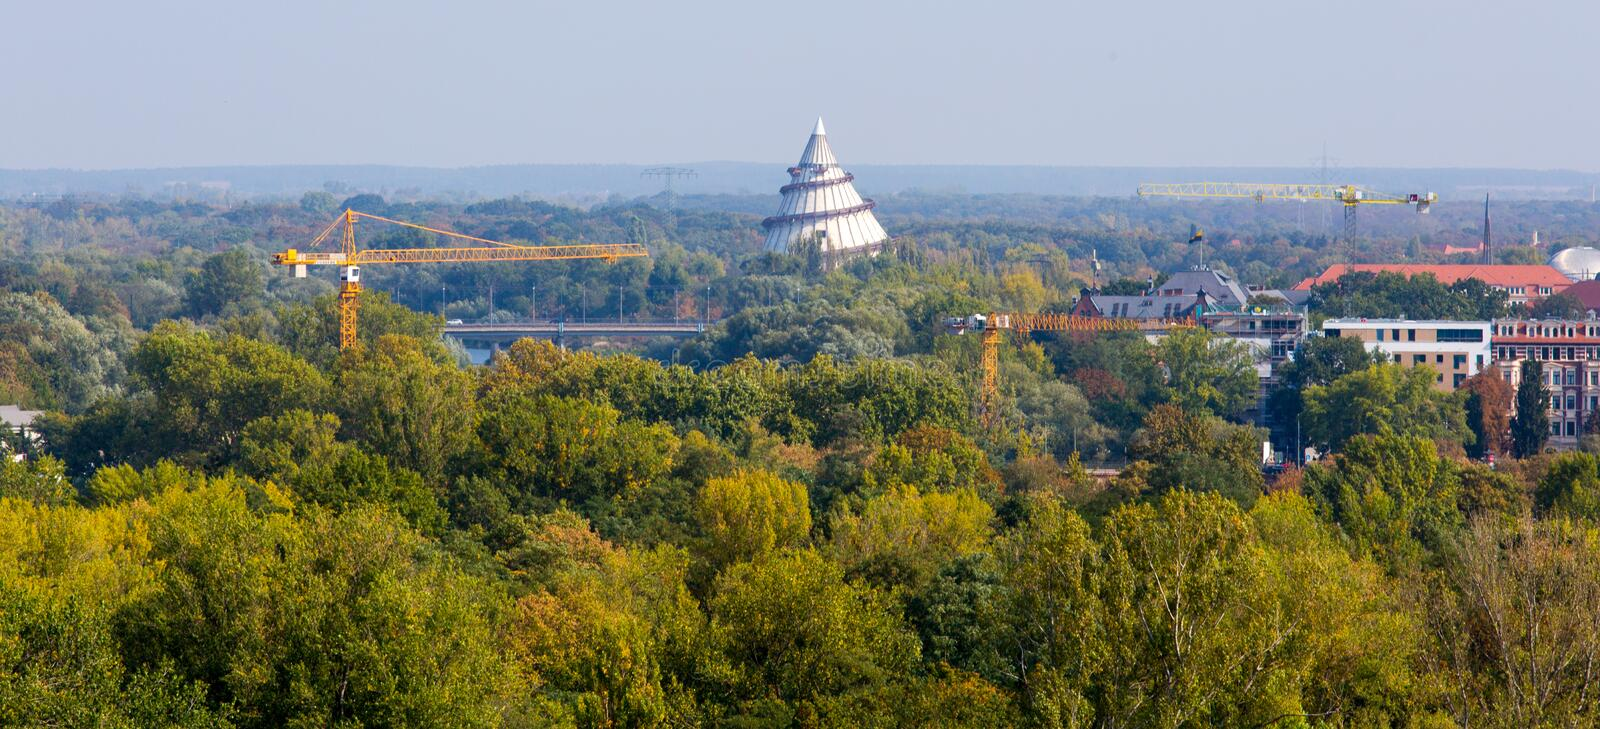 Millenium tower in Magdeburg royalty free stock image